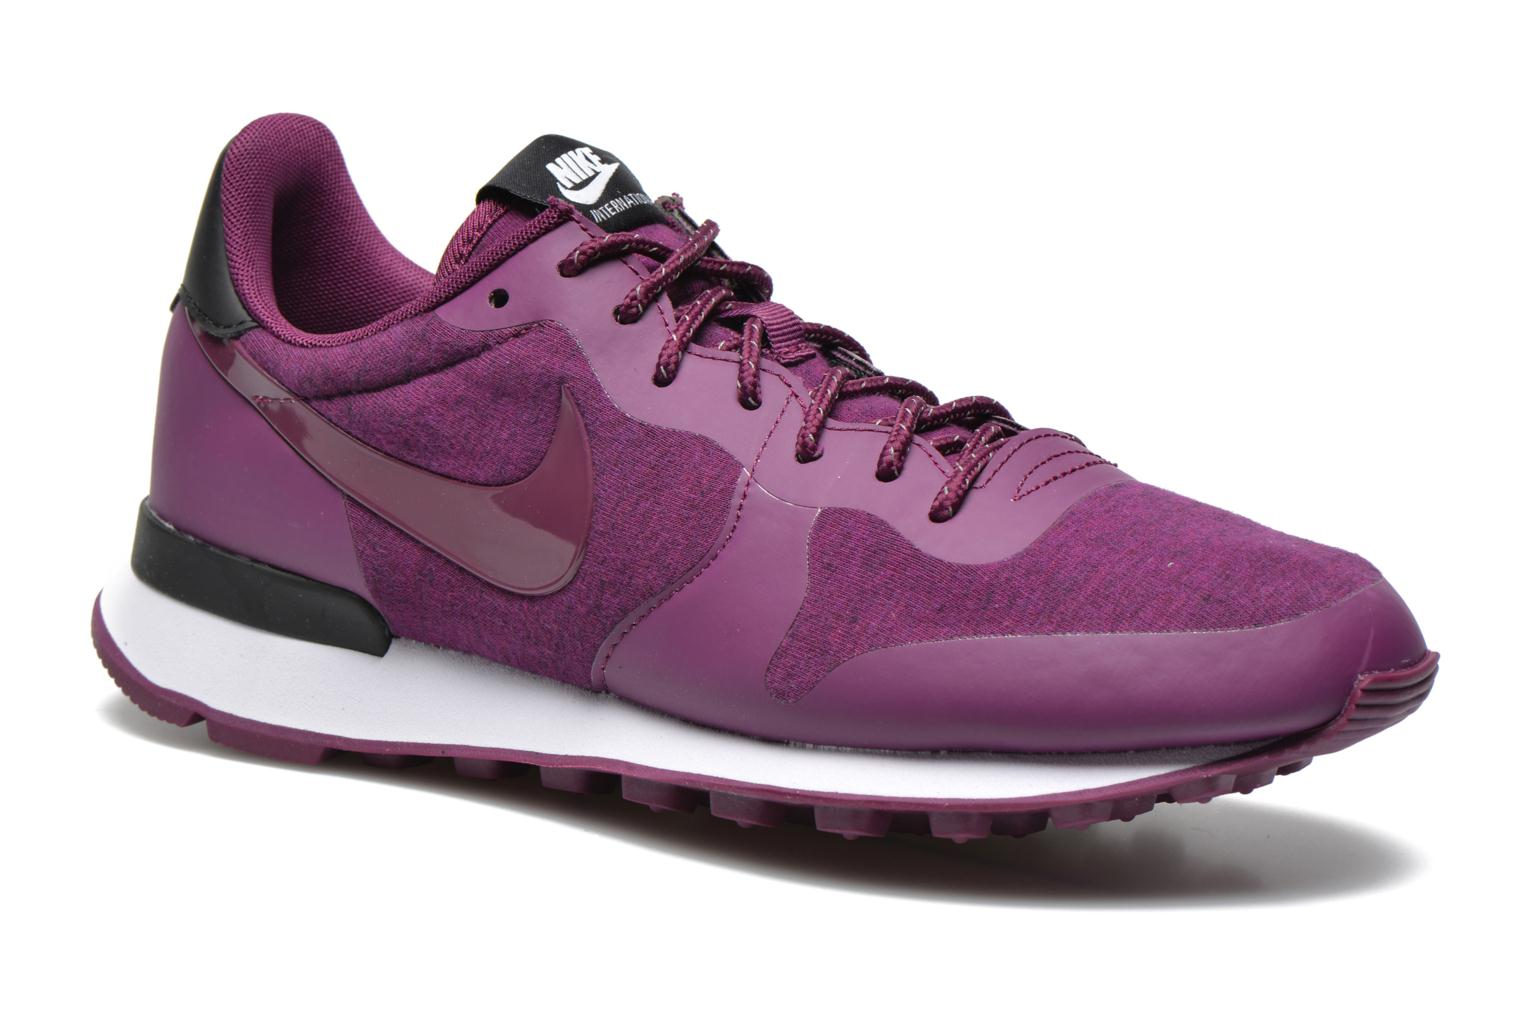 W Nike Internationalist Tp Mulberry/Mulberry-Black-White